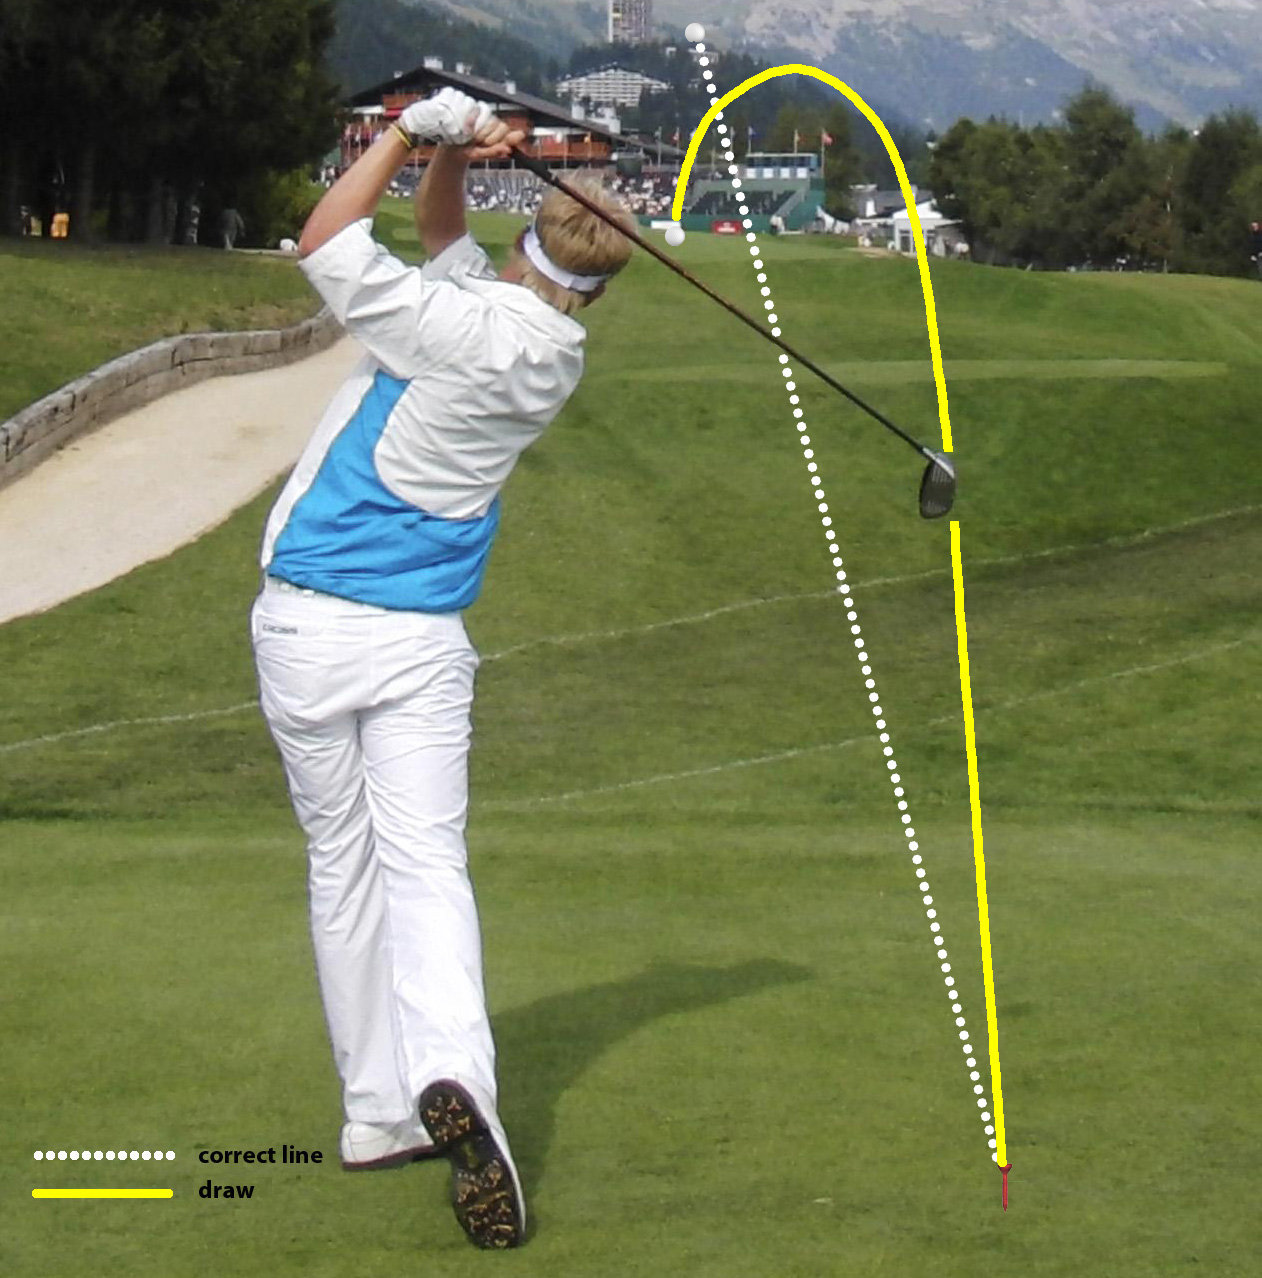 Fig.1 - A sweet draw is one of the most beautiful ball flights in golf, so how do you do it?